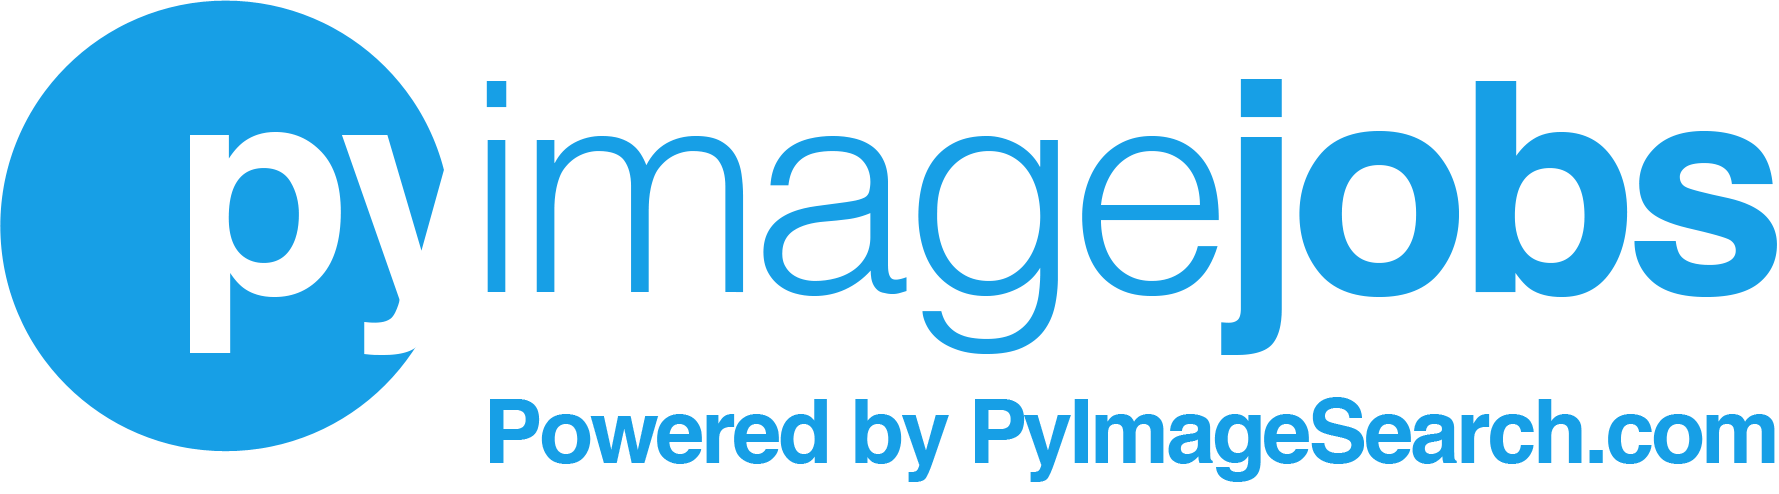 PyImageJobs